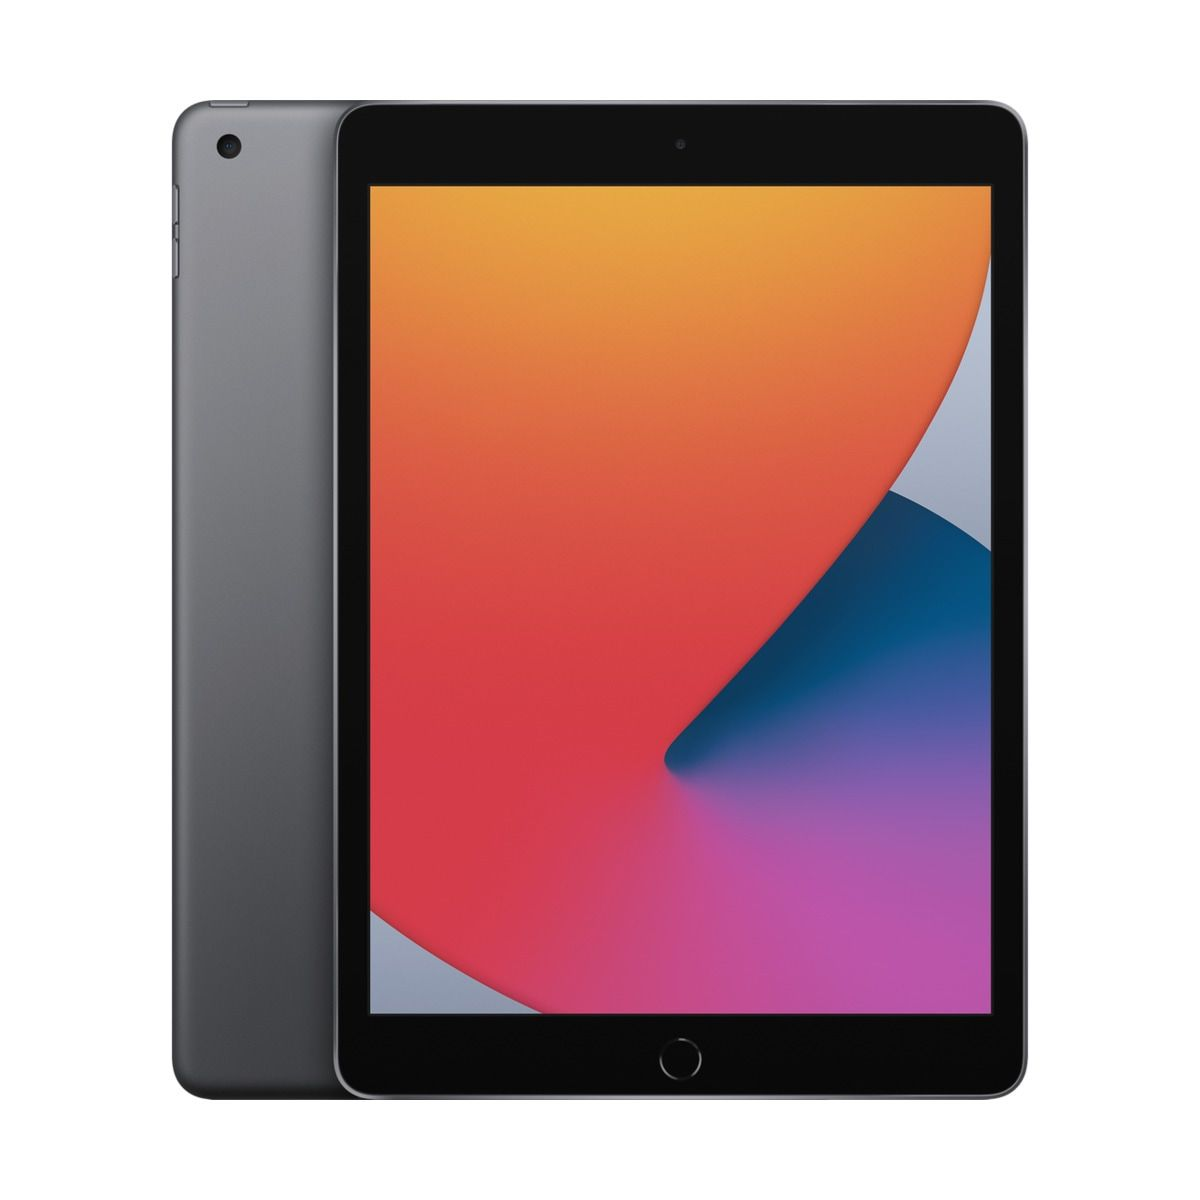 iPad Wi-Fi 128GB - Space Grey / SK